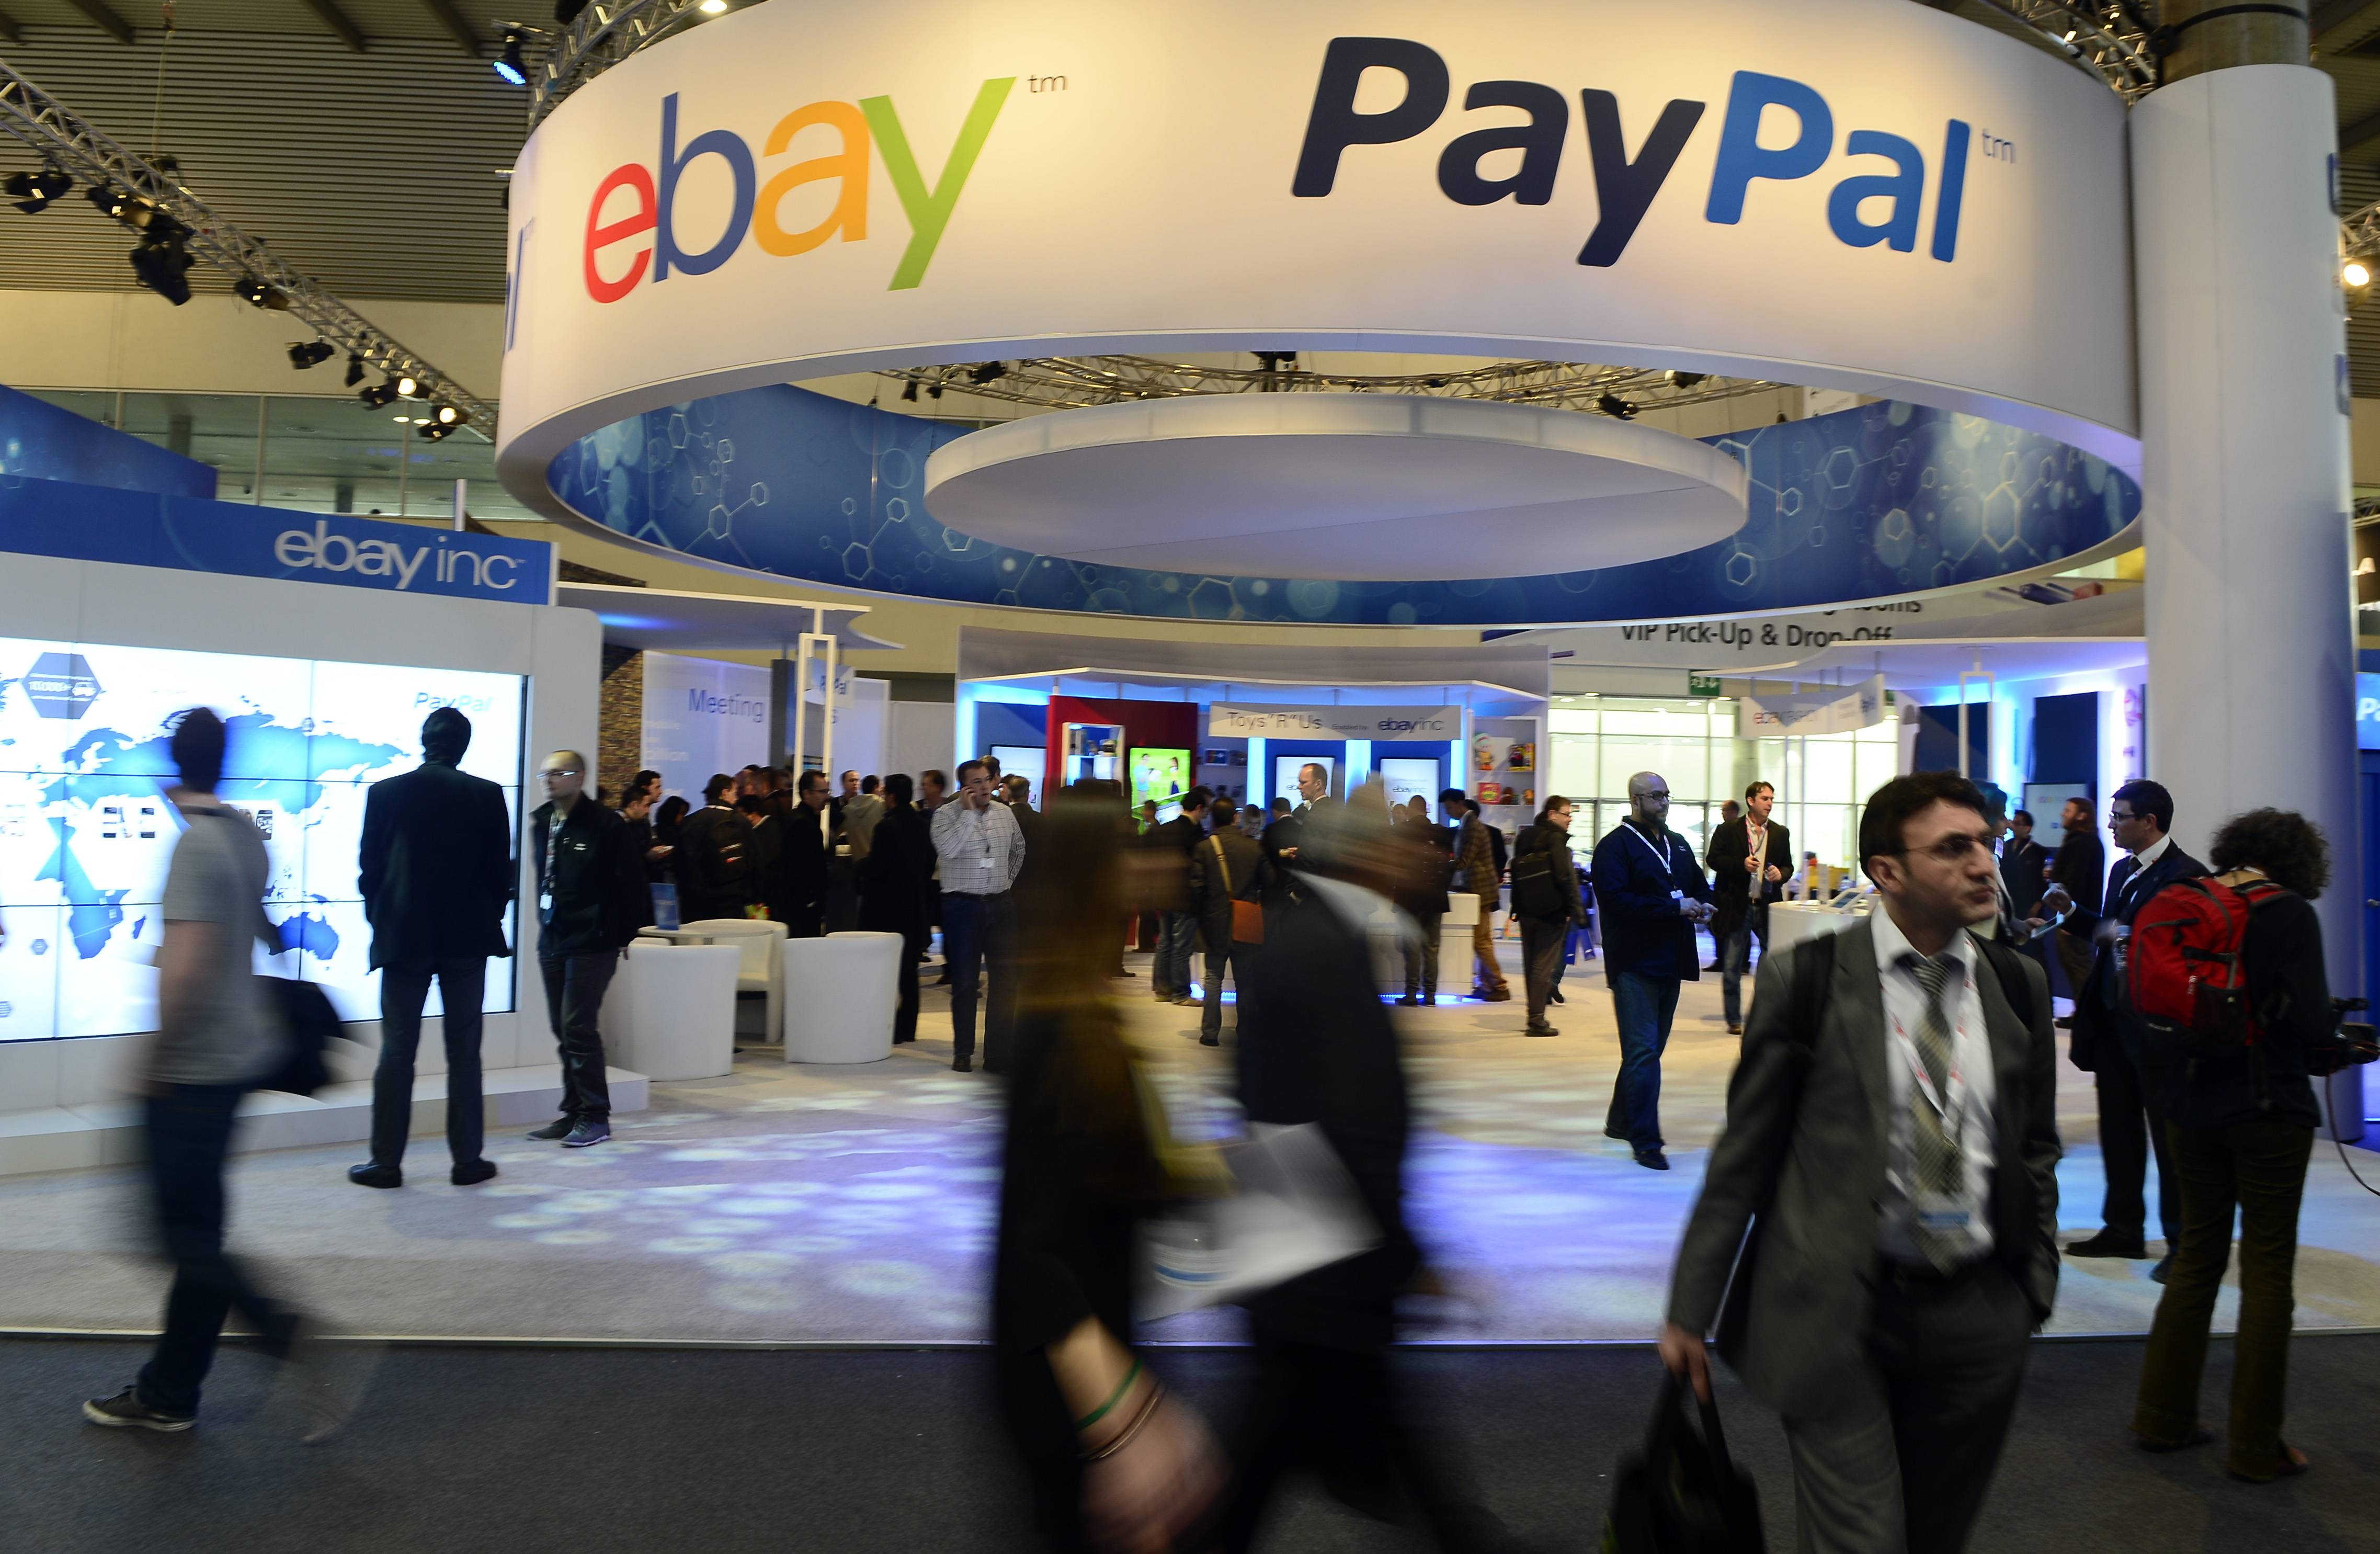 EBay Inc., the world's biggest online marketplace, said it is separating from its payments arm PayPal, in a move that will create two separate publicly companies.